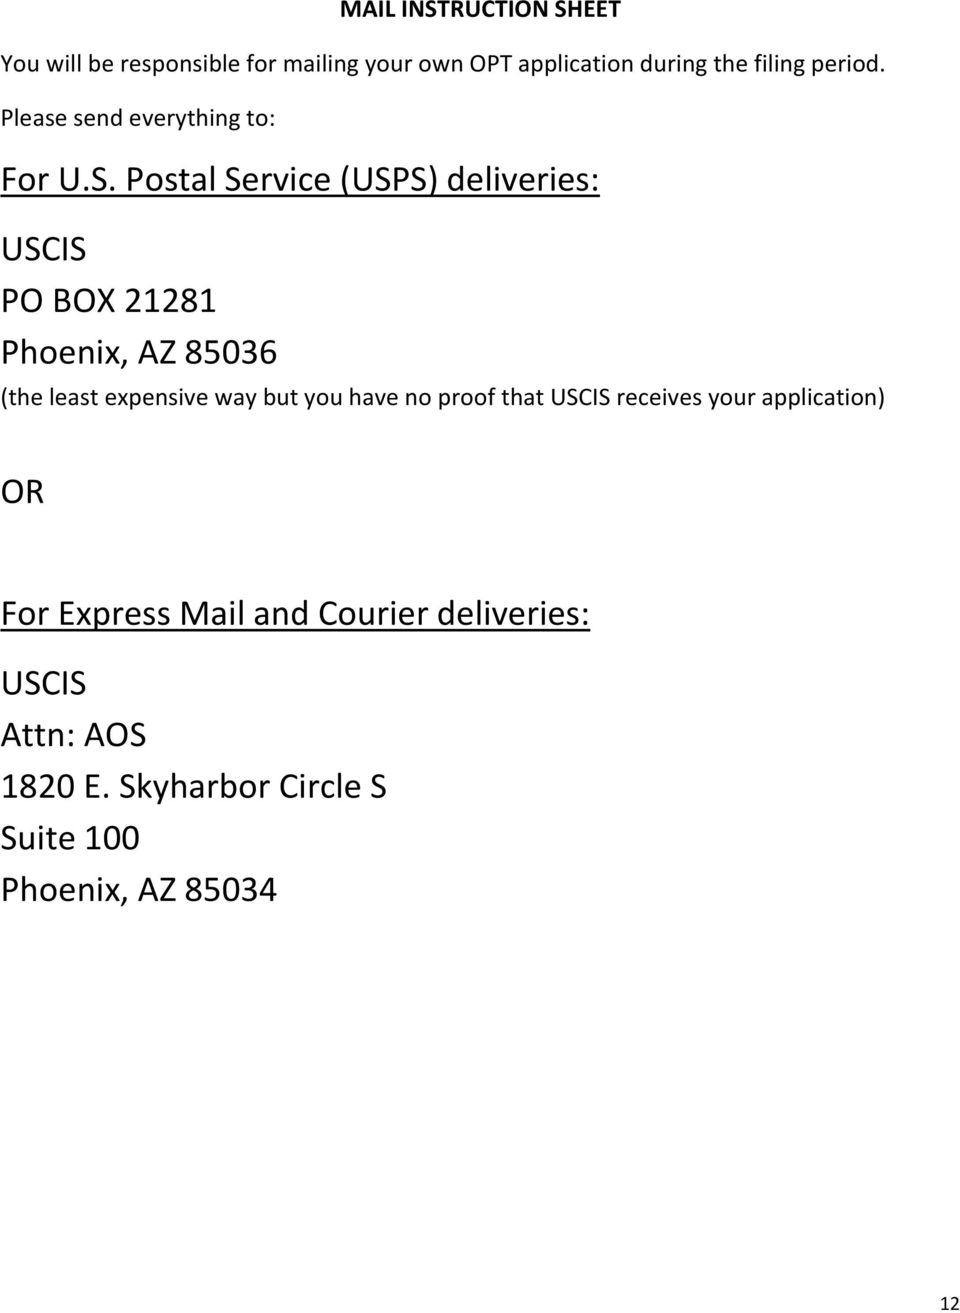 Postal Service (USPS) deliveries: USCIS PO BOX 21281 Phoenix, AZ 85036 (the least expensive way but you